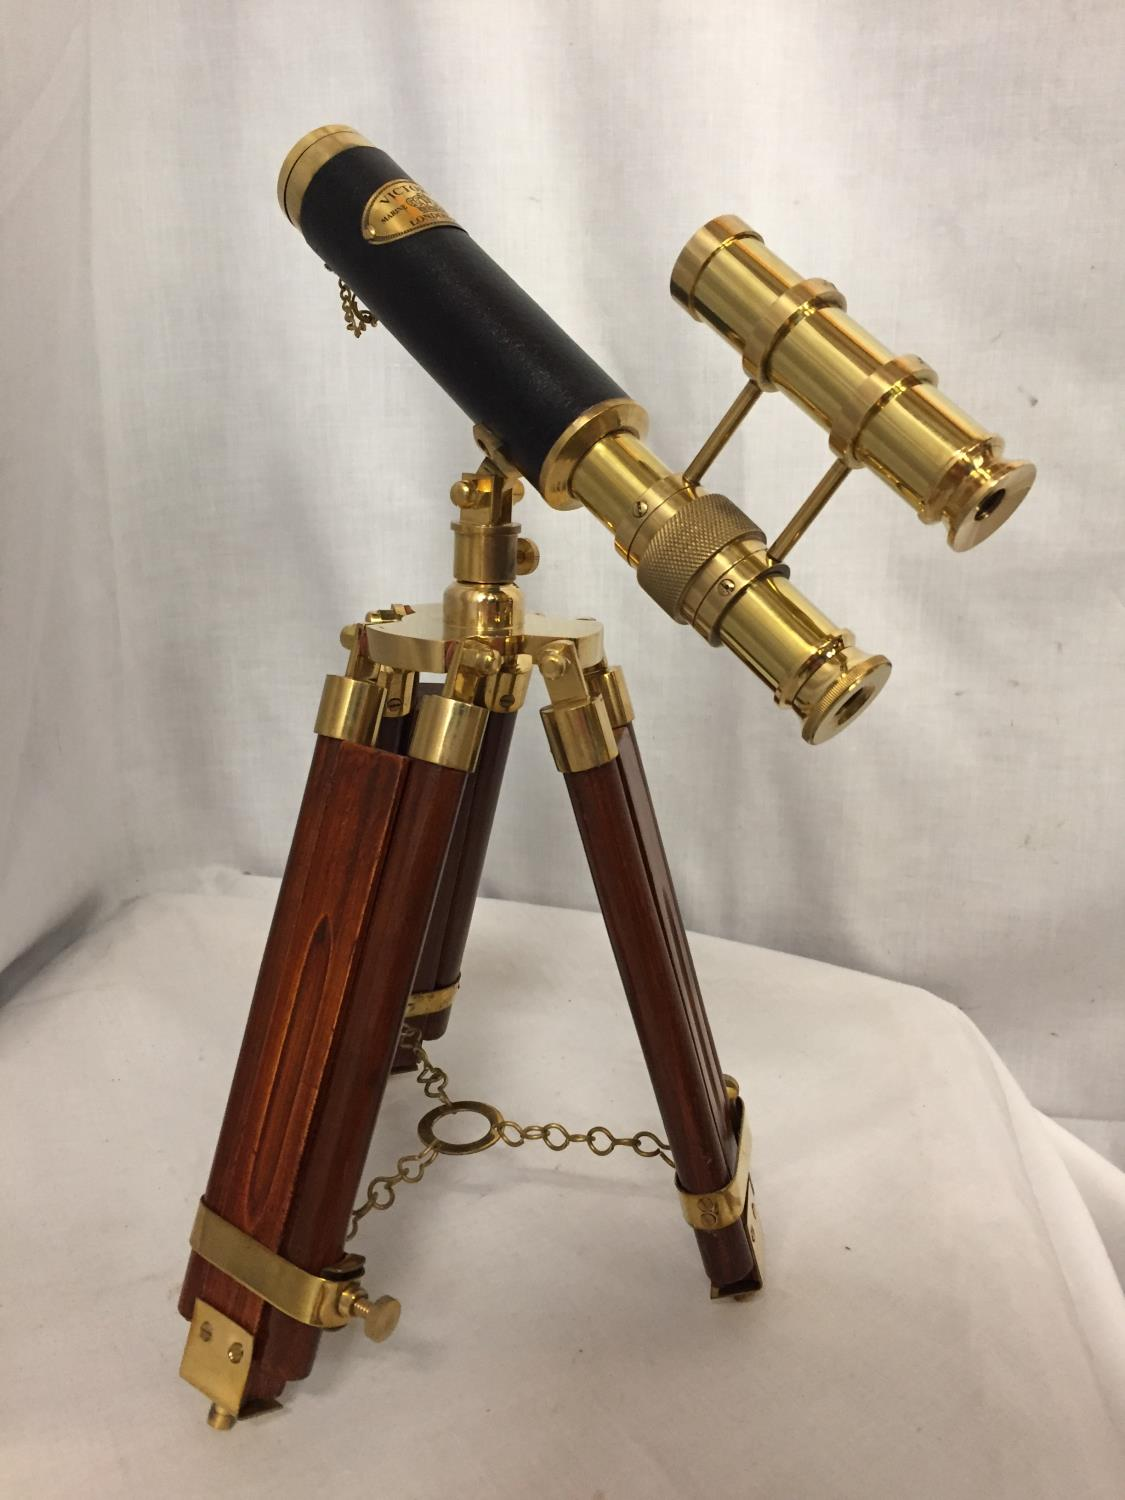 A BRASS AND LEATHER TELESCOPE ON A WOODEN TRIPOD STAND, 34CM HIGH - Image 4 of 4